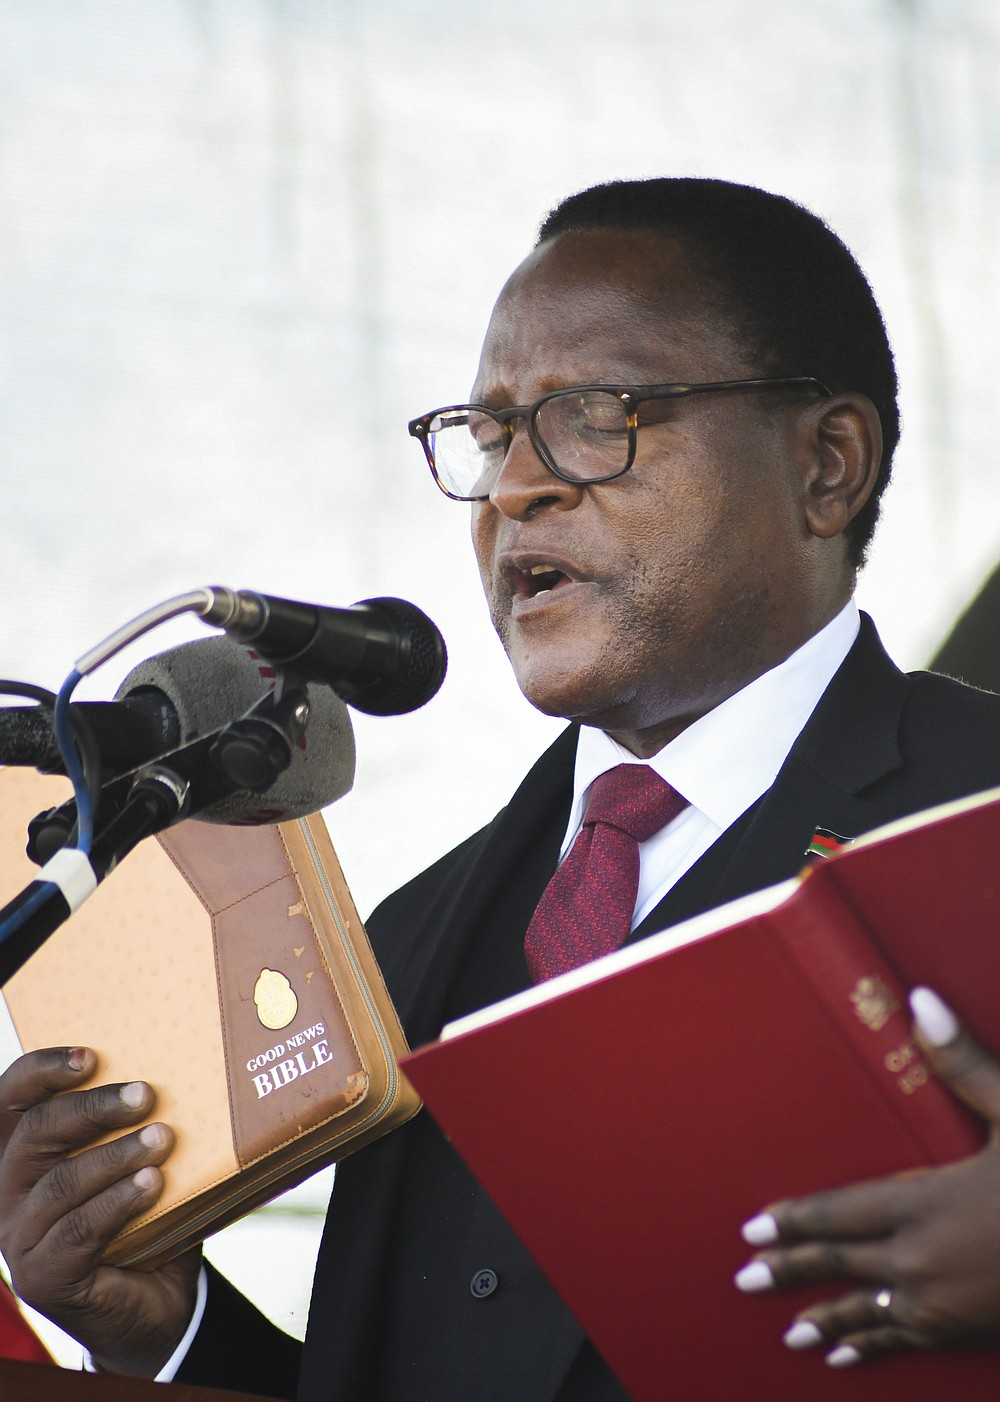 Malawi's newly elected President Lazarus Chakwera takes the oath of office in Lilongwe, Malawi, Sunday, June 28 2020. Chakwera is Malawi's sixth president after winning the historic election held last week, the first time a court-overturned vote in Africa has resulted in the defeat of an incumbent leader. (AP Photo/Thoko Chikondi)